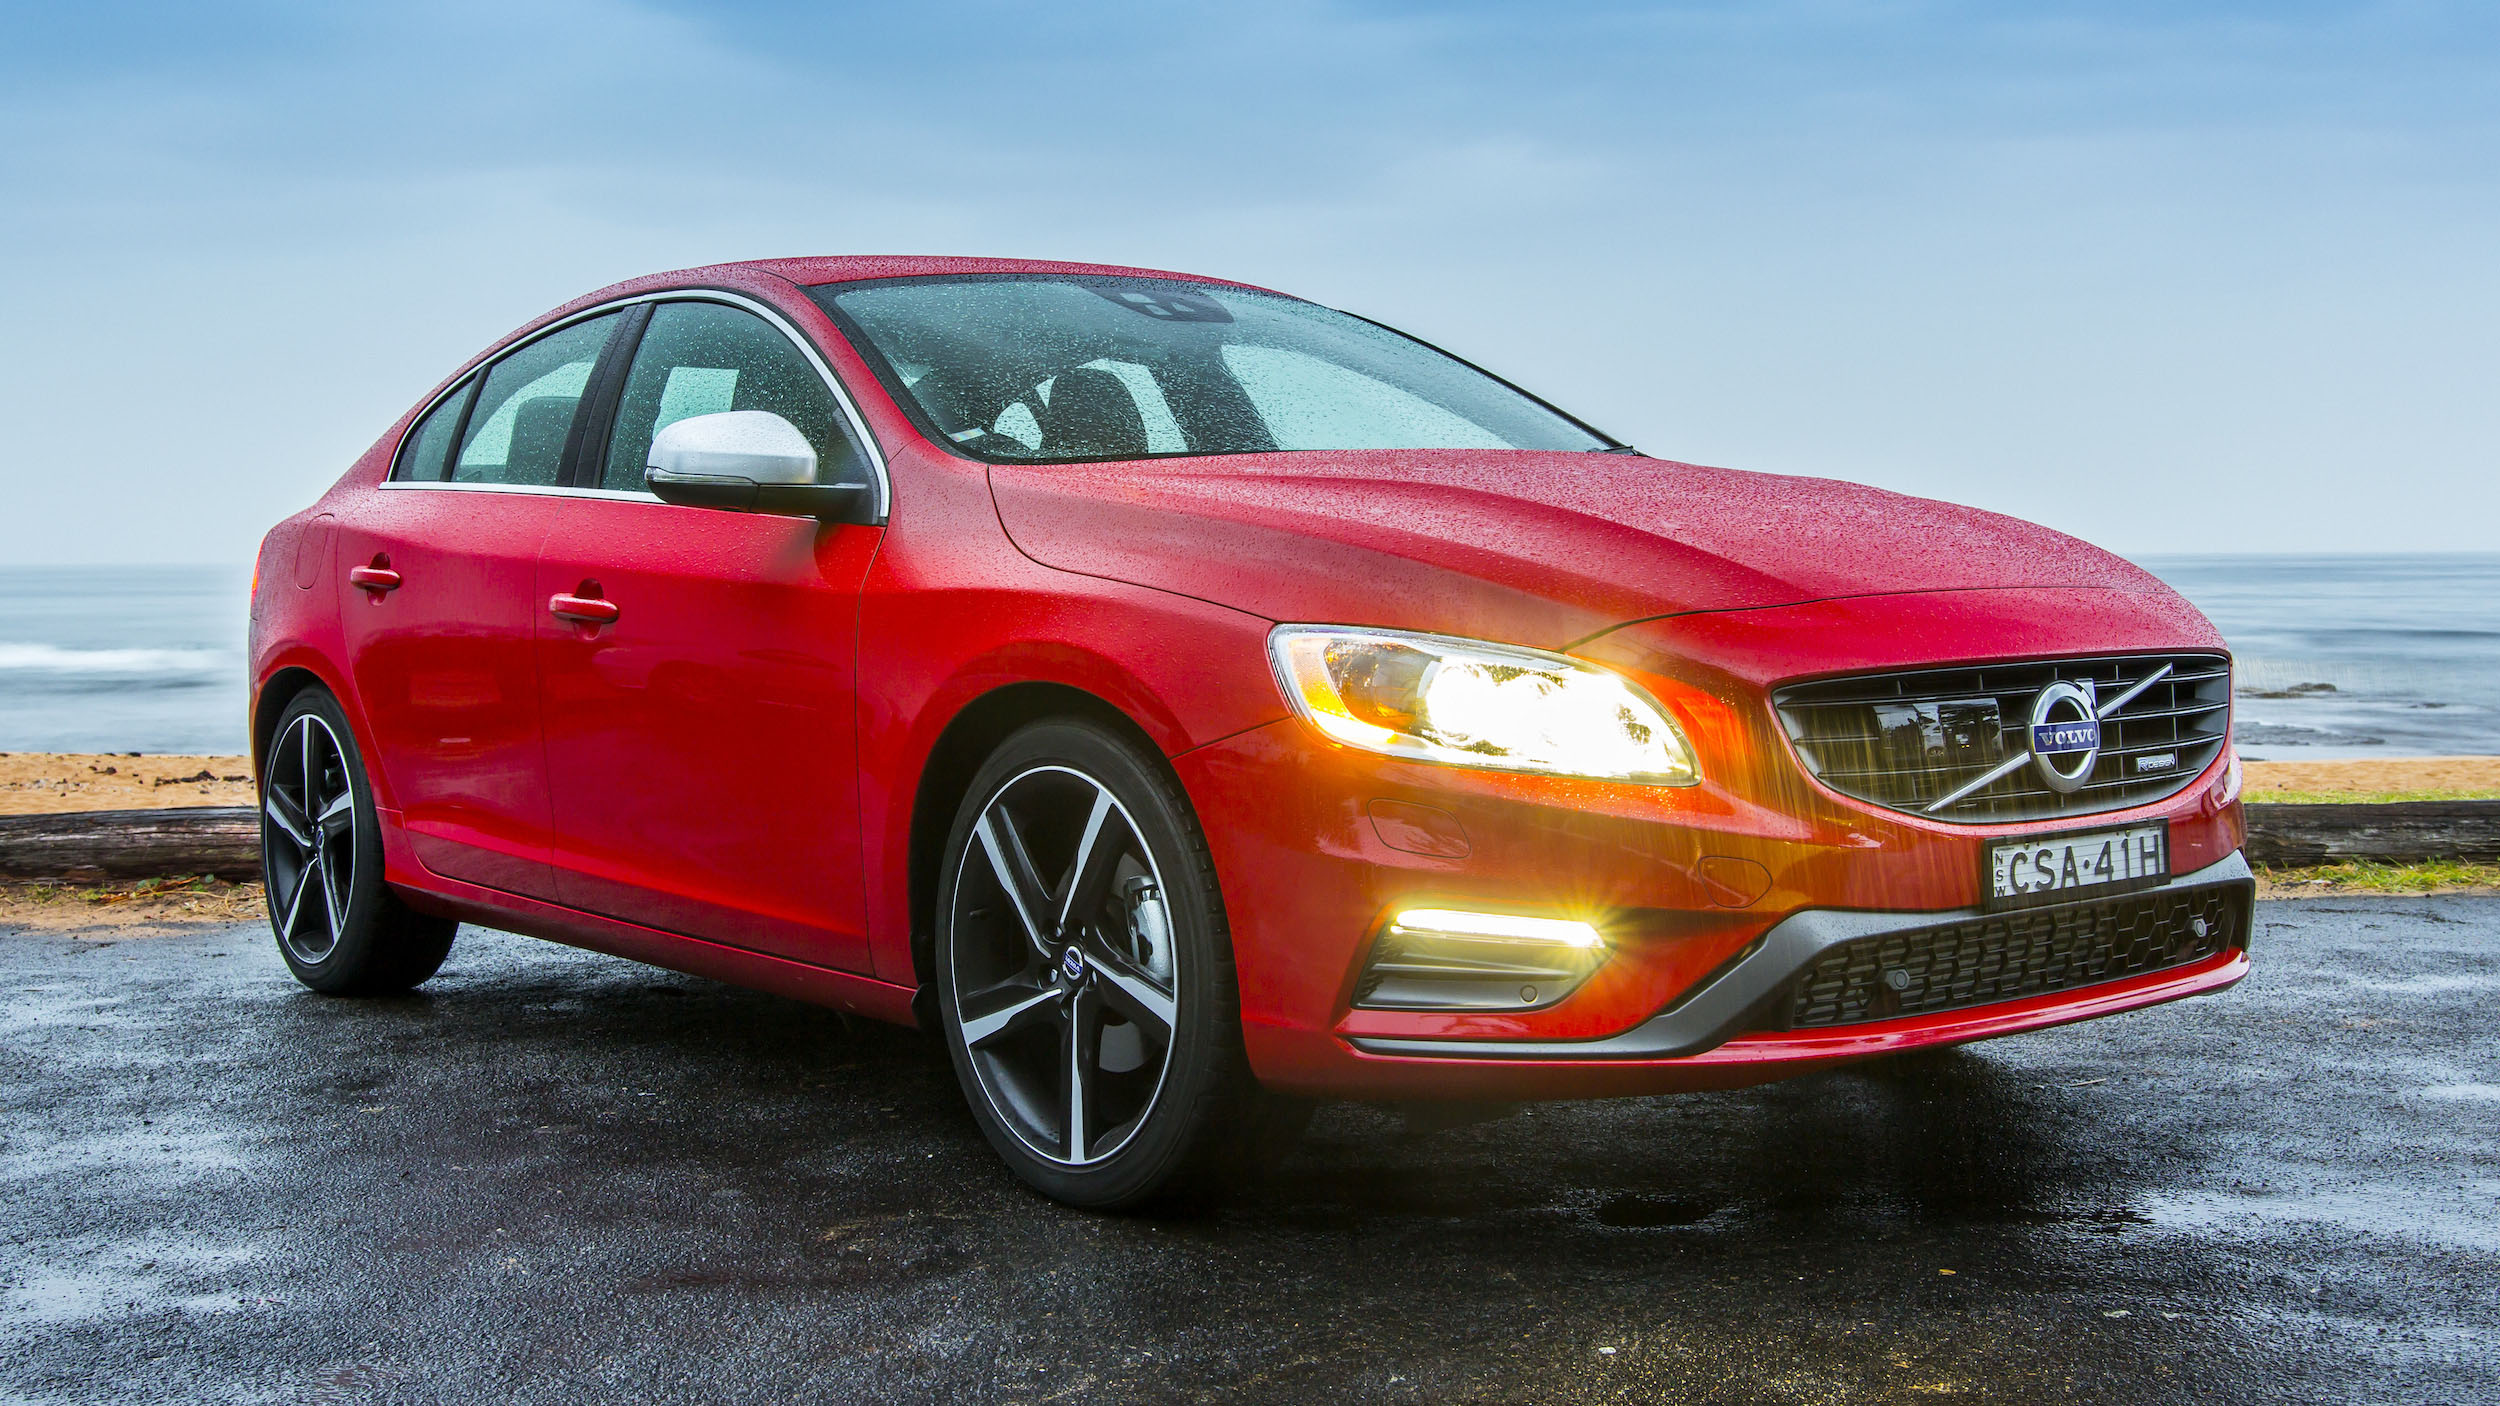 2014 volvo s60 review t5 r design drive e photos. Black Bedroom Furniture Sets. Home Design Ideas